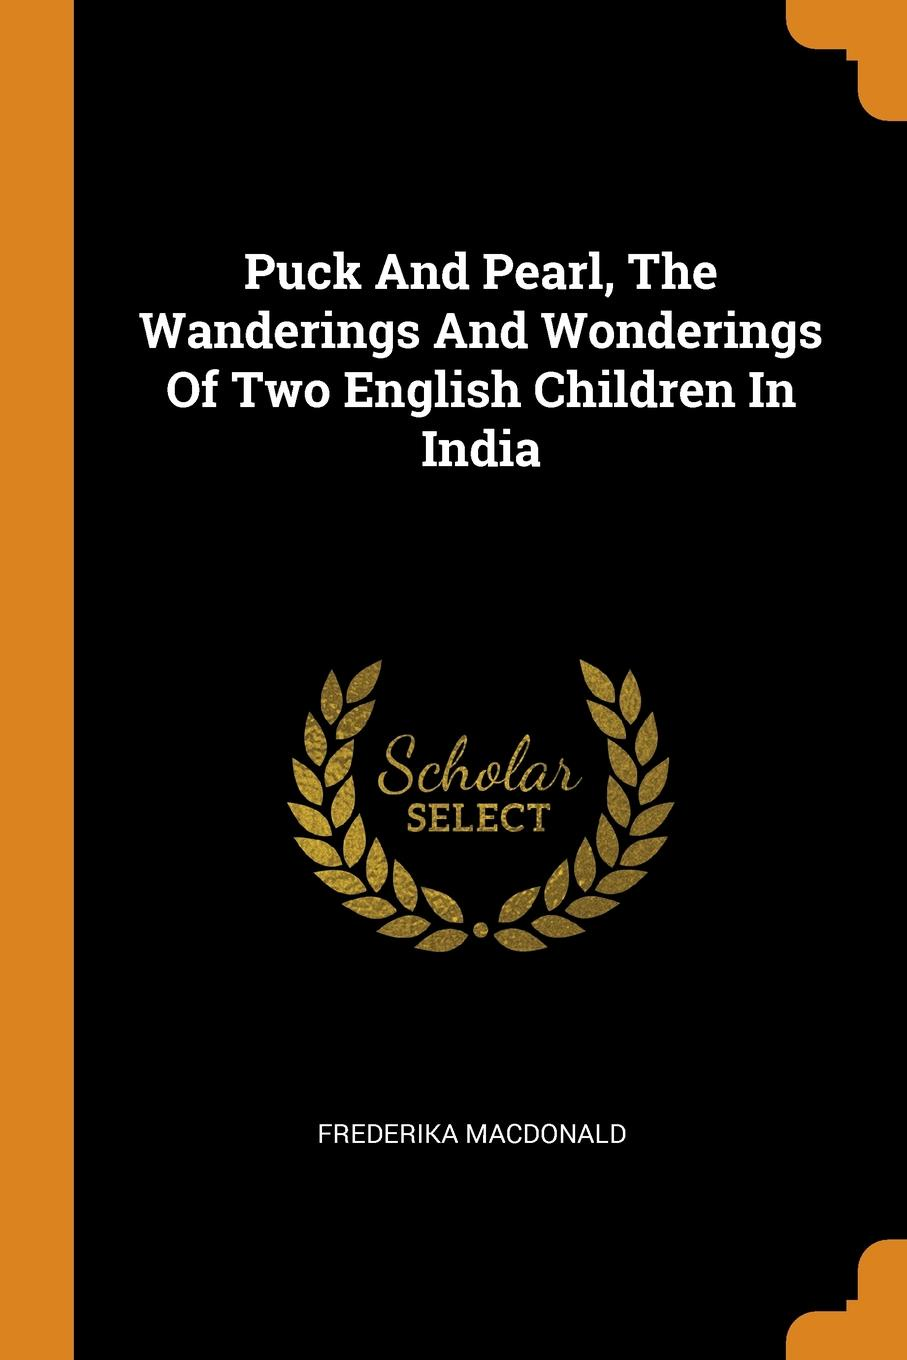 Frederika Macdonald Puck And Pearl, The Wanderings And Wonderings Of Two English Children In India